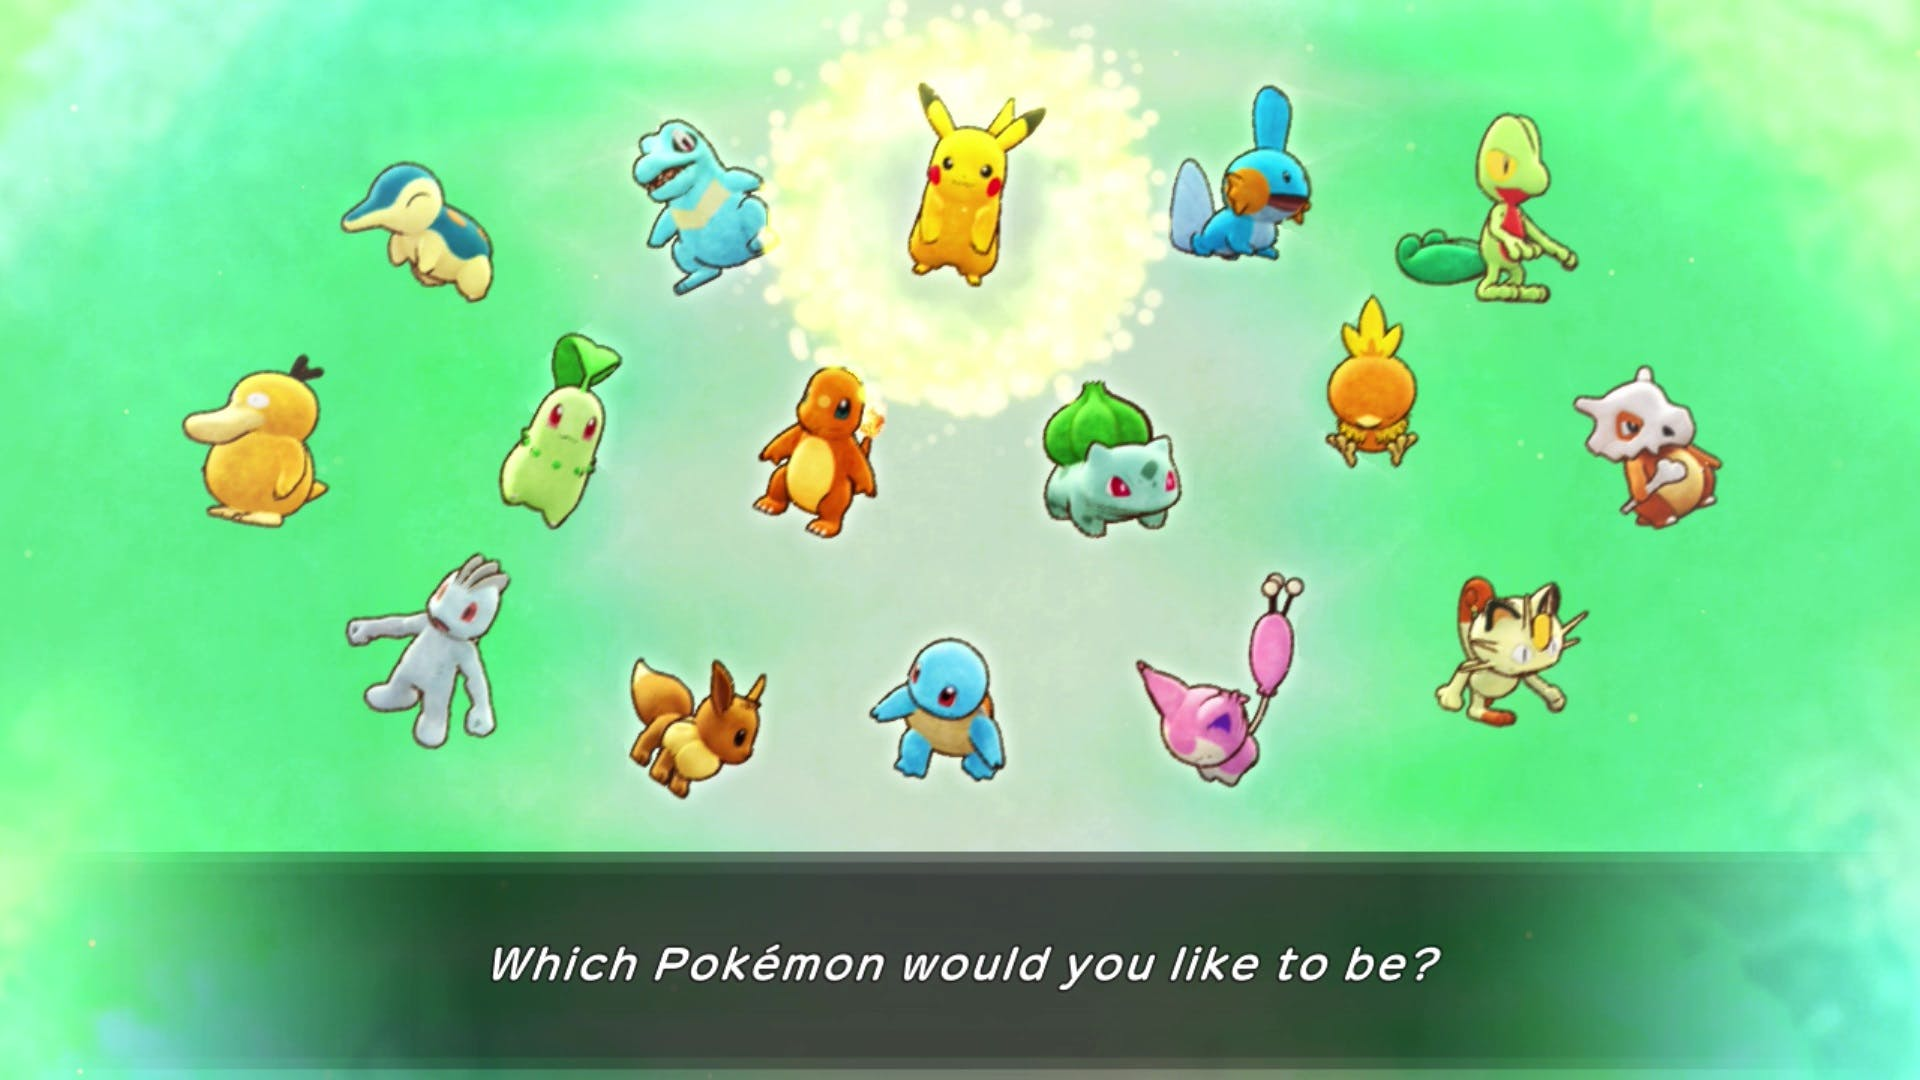 Pokemon Mystery Dungeon: Rescue Team DX got their quiz back! But it's redundant since I could just choose which Pokemon I want anyway...